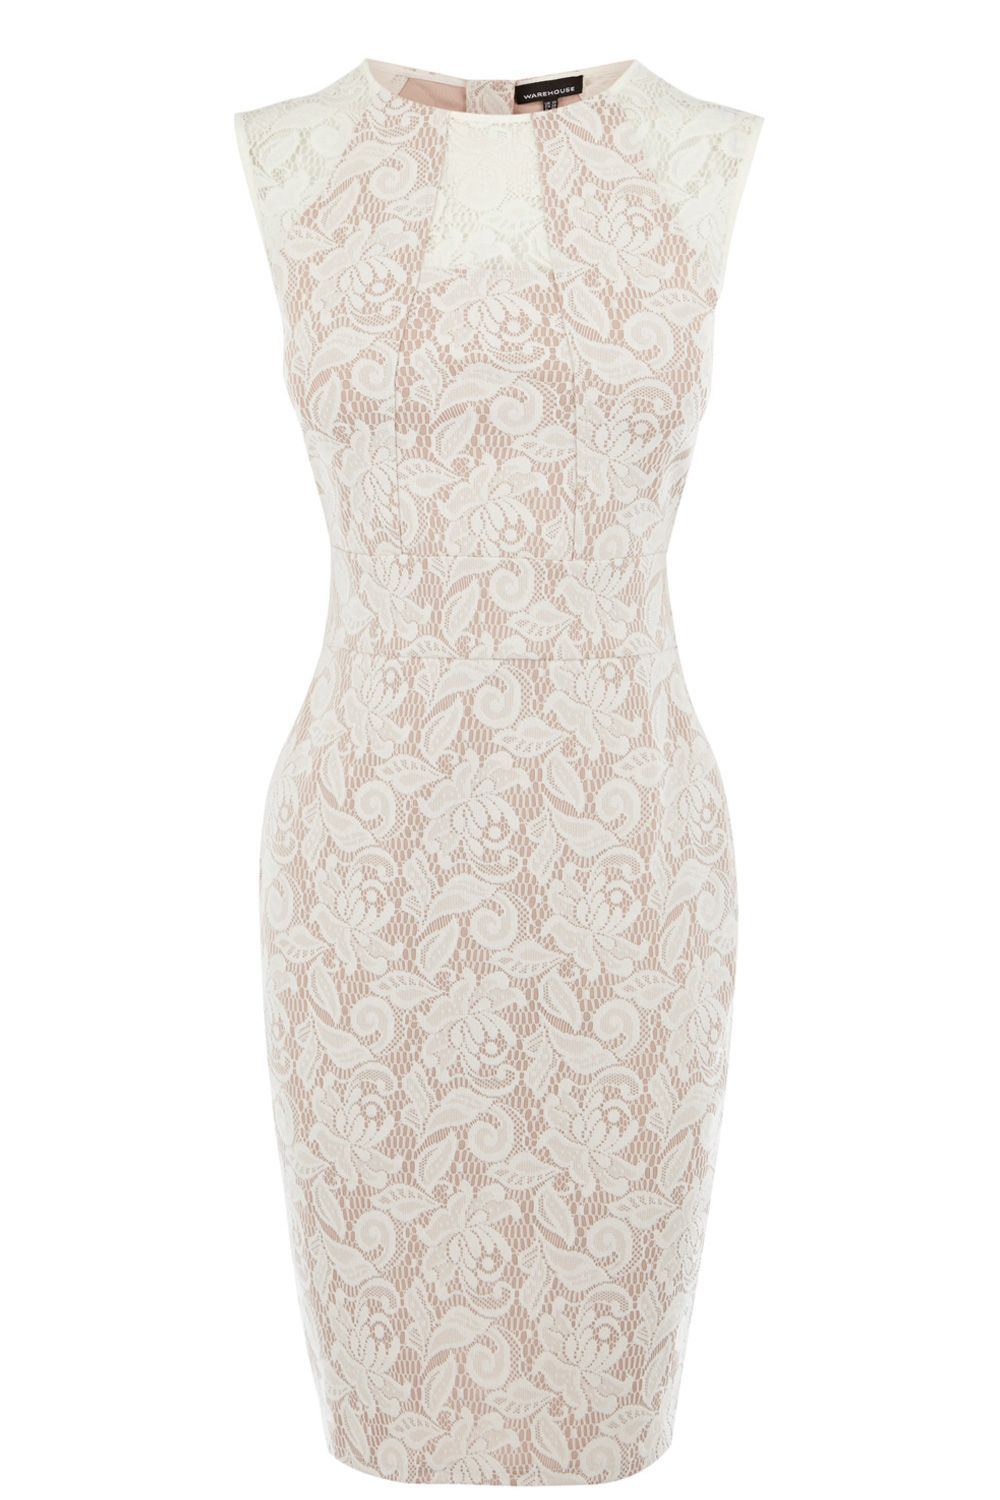 Panelled bonded lace dress